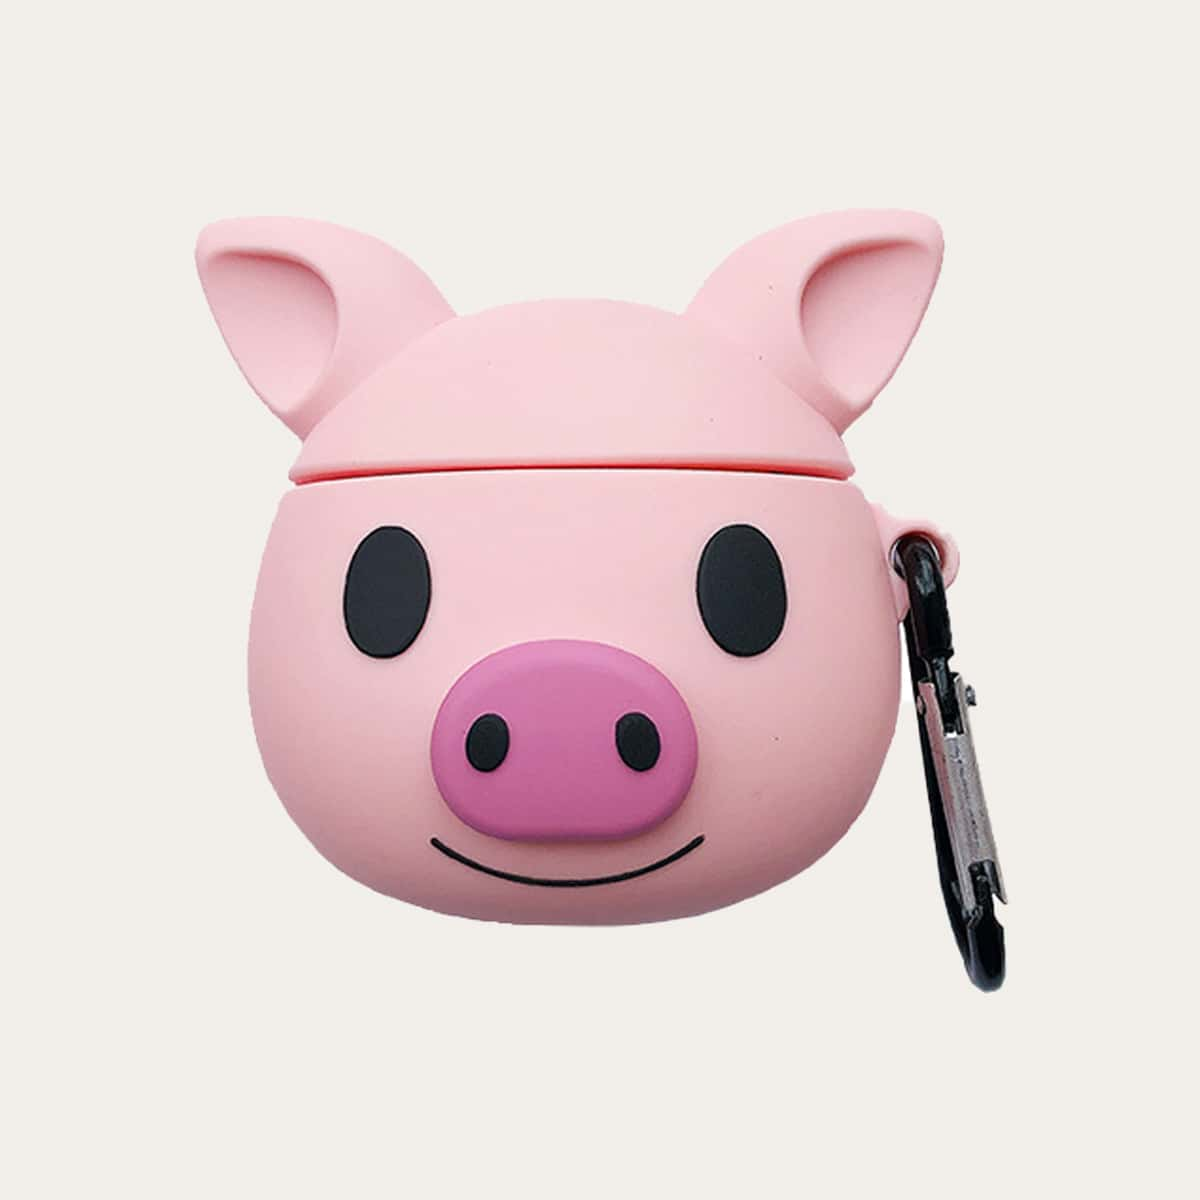 Pig Shaped Airpods Case